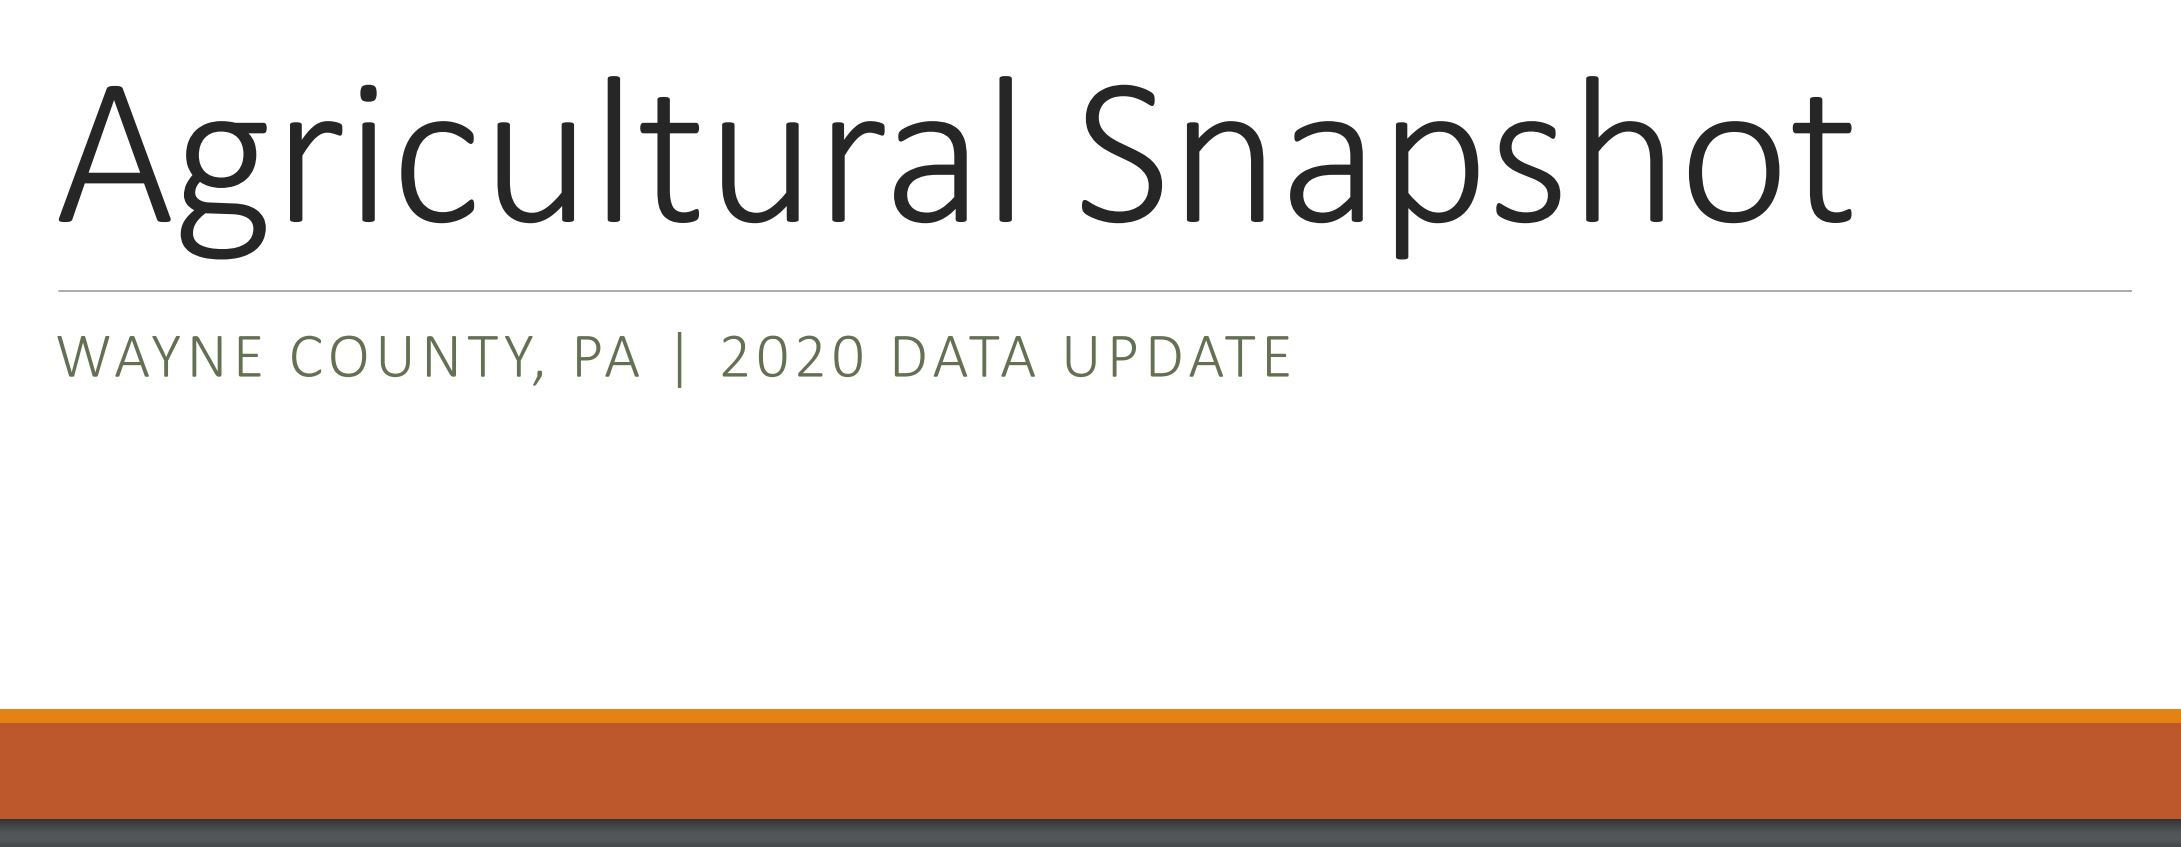 An image of the Agricultural Snapshot 2020 Cover linking to a document containing the most up to dat